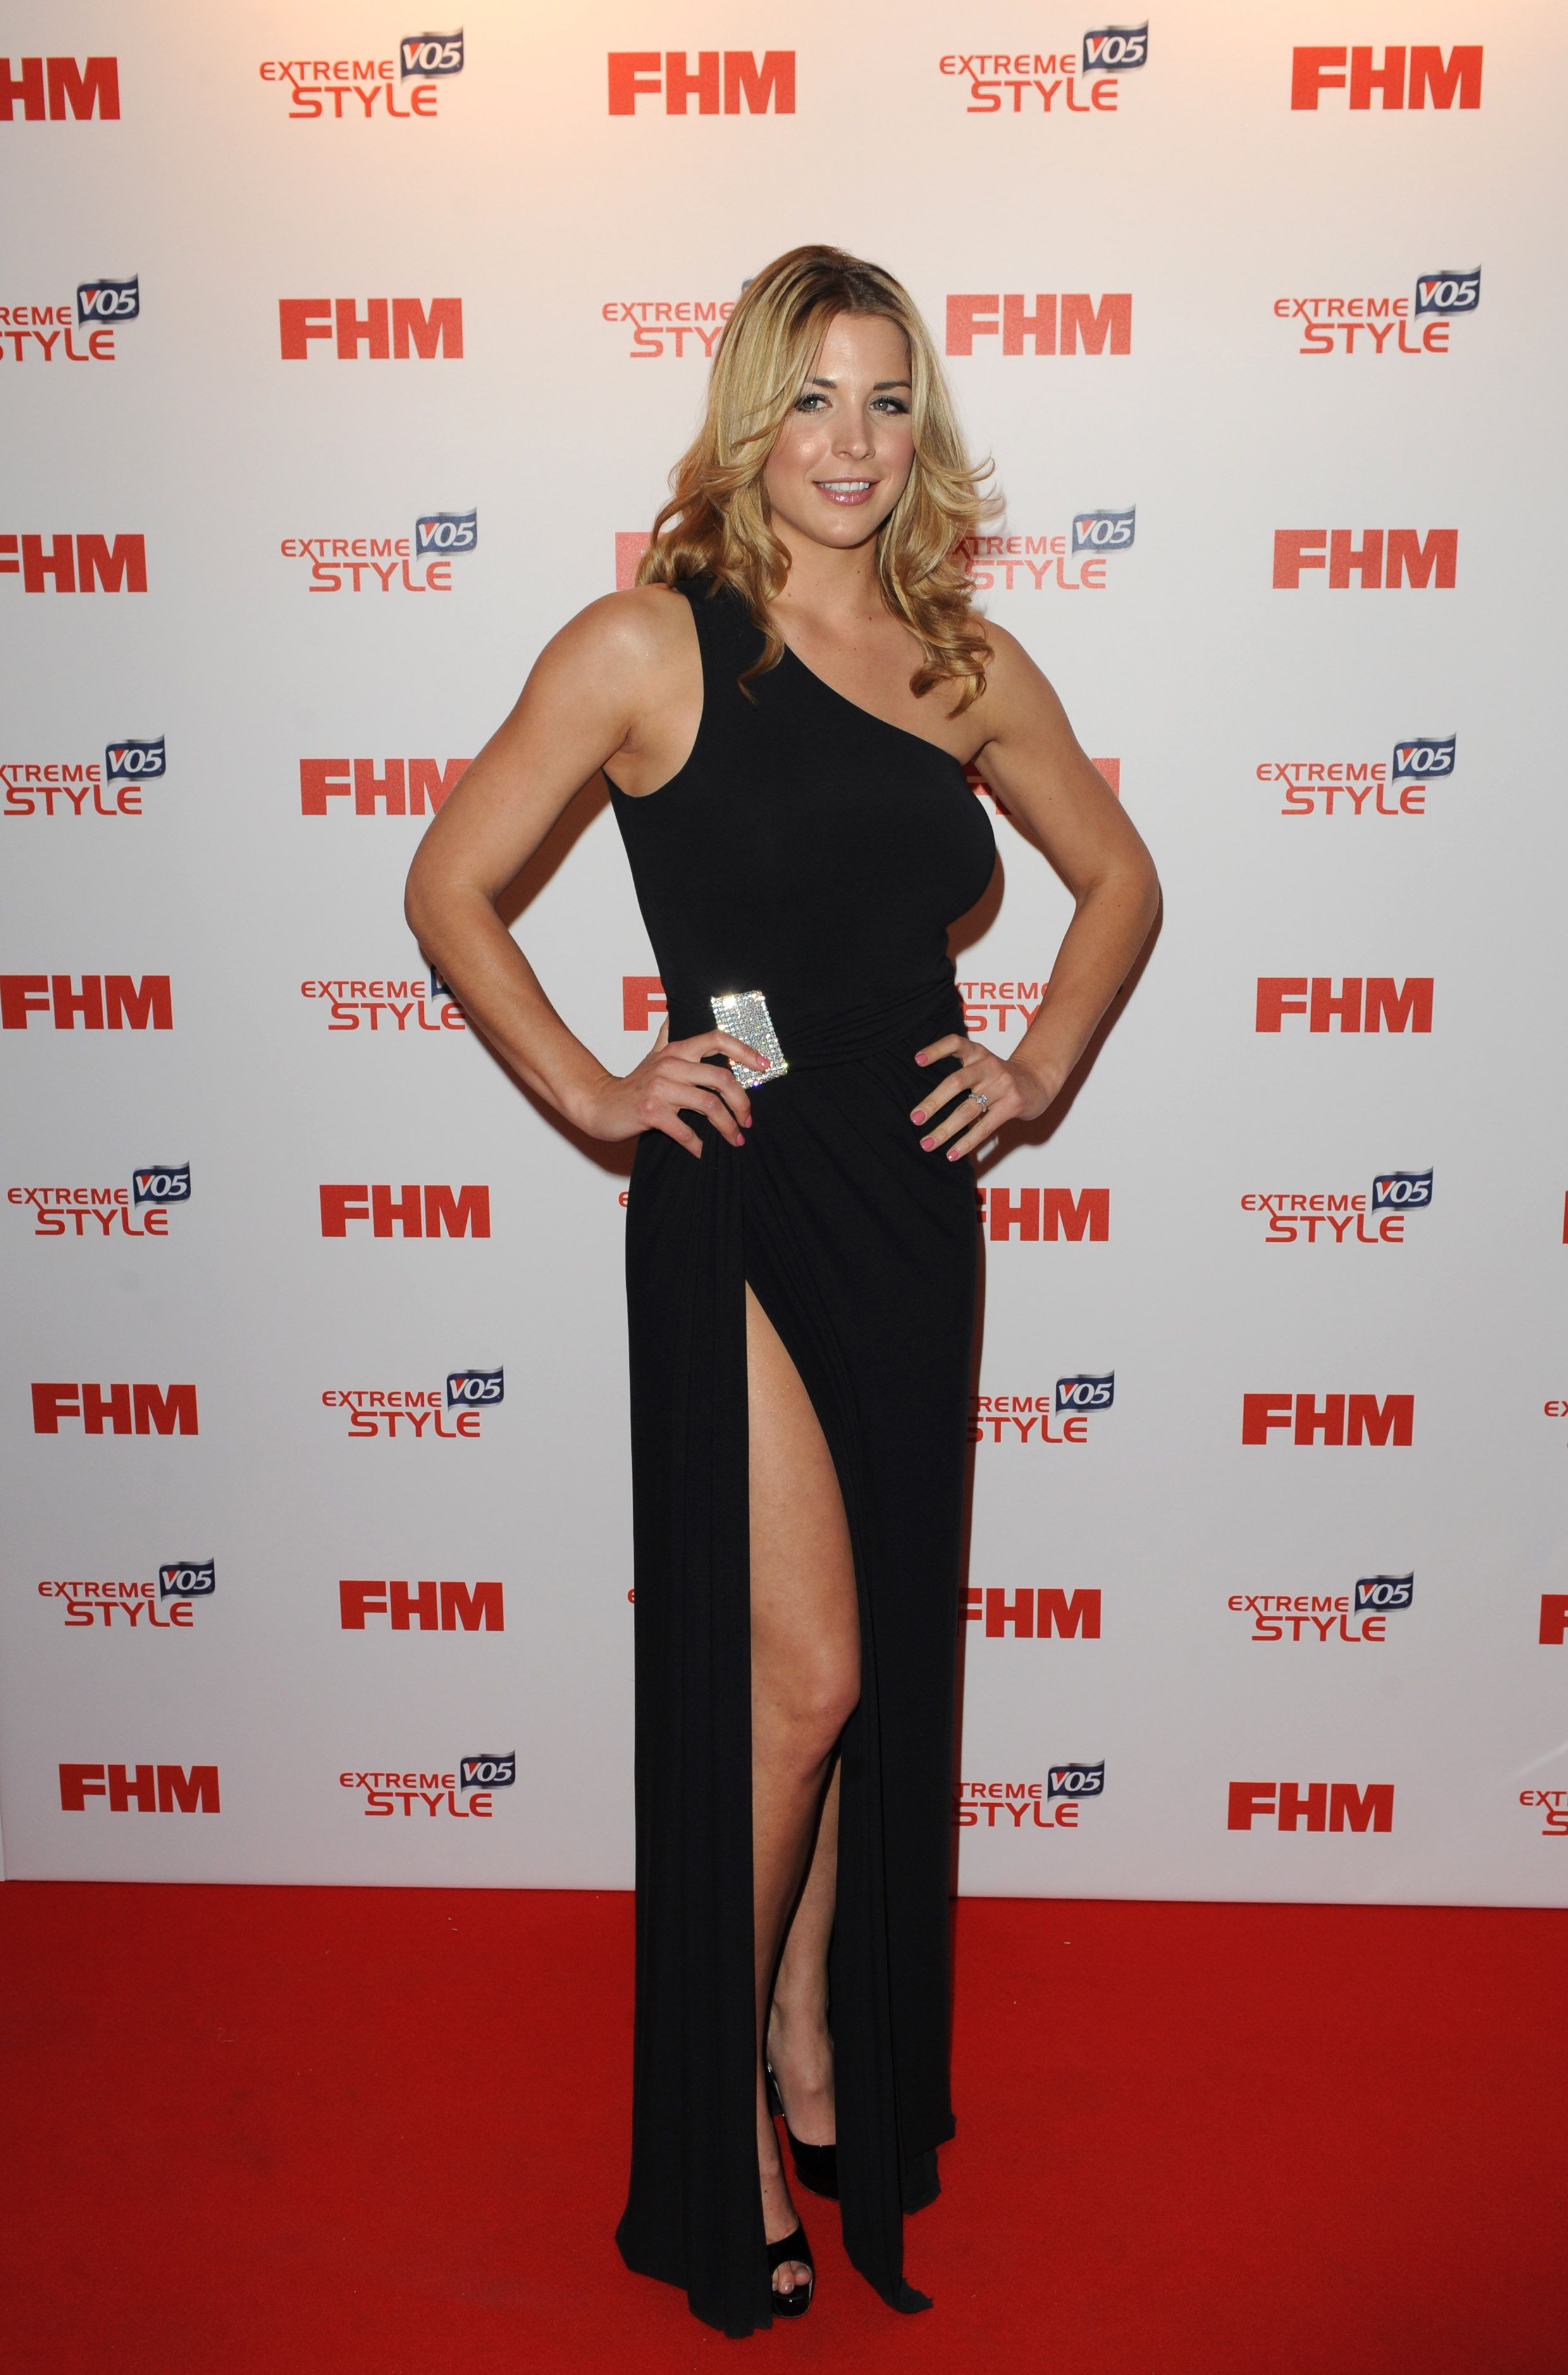 Gemma Atkinson FHM Sexiest Women in the World